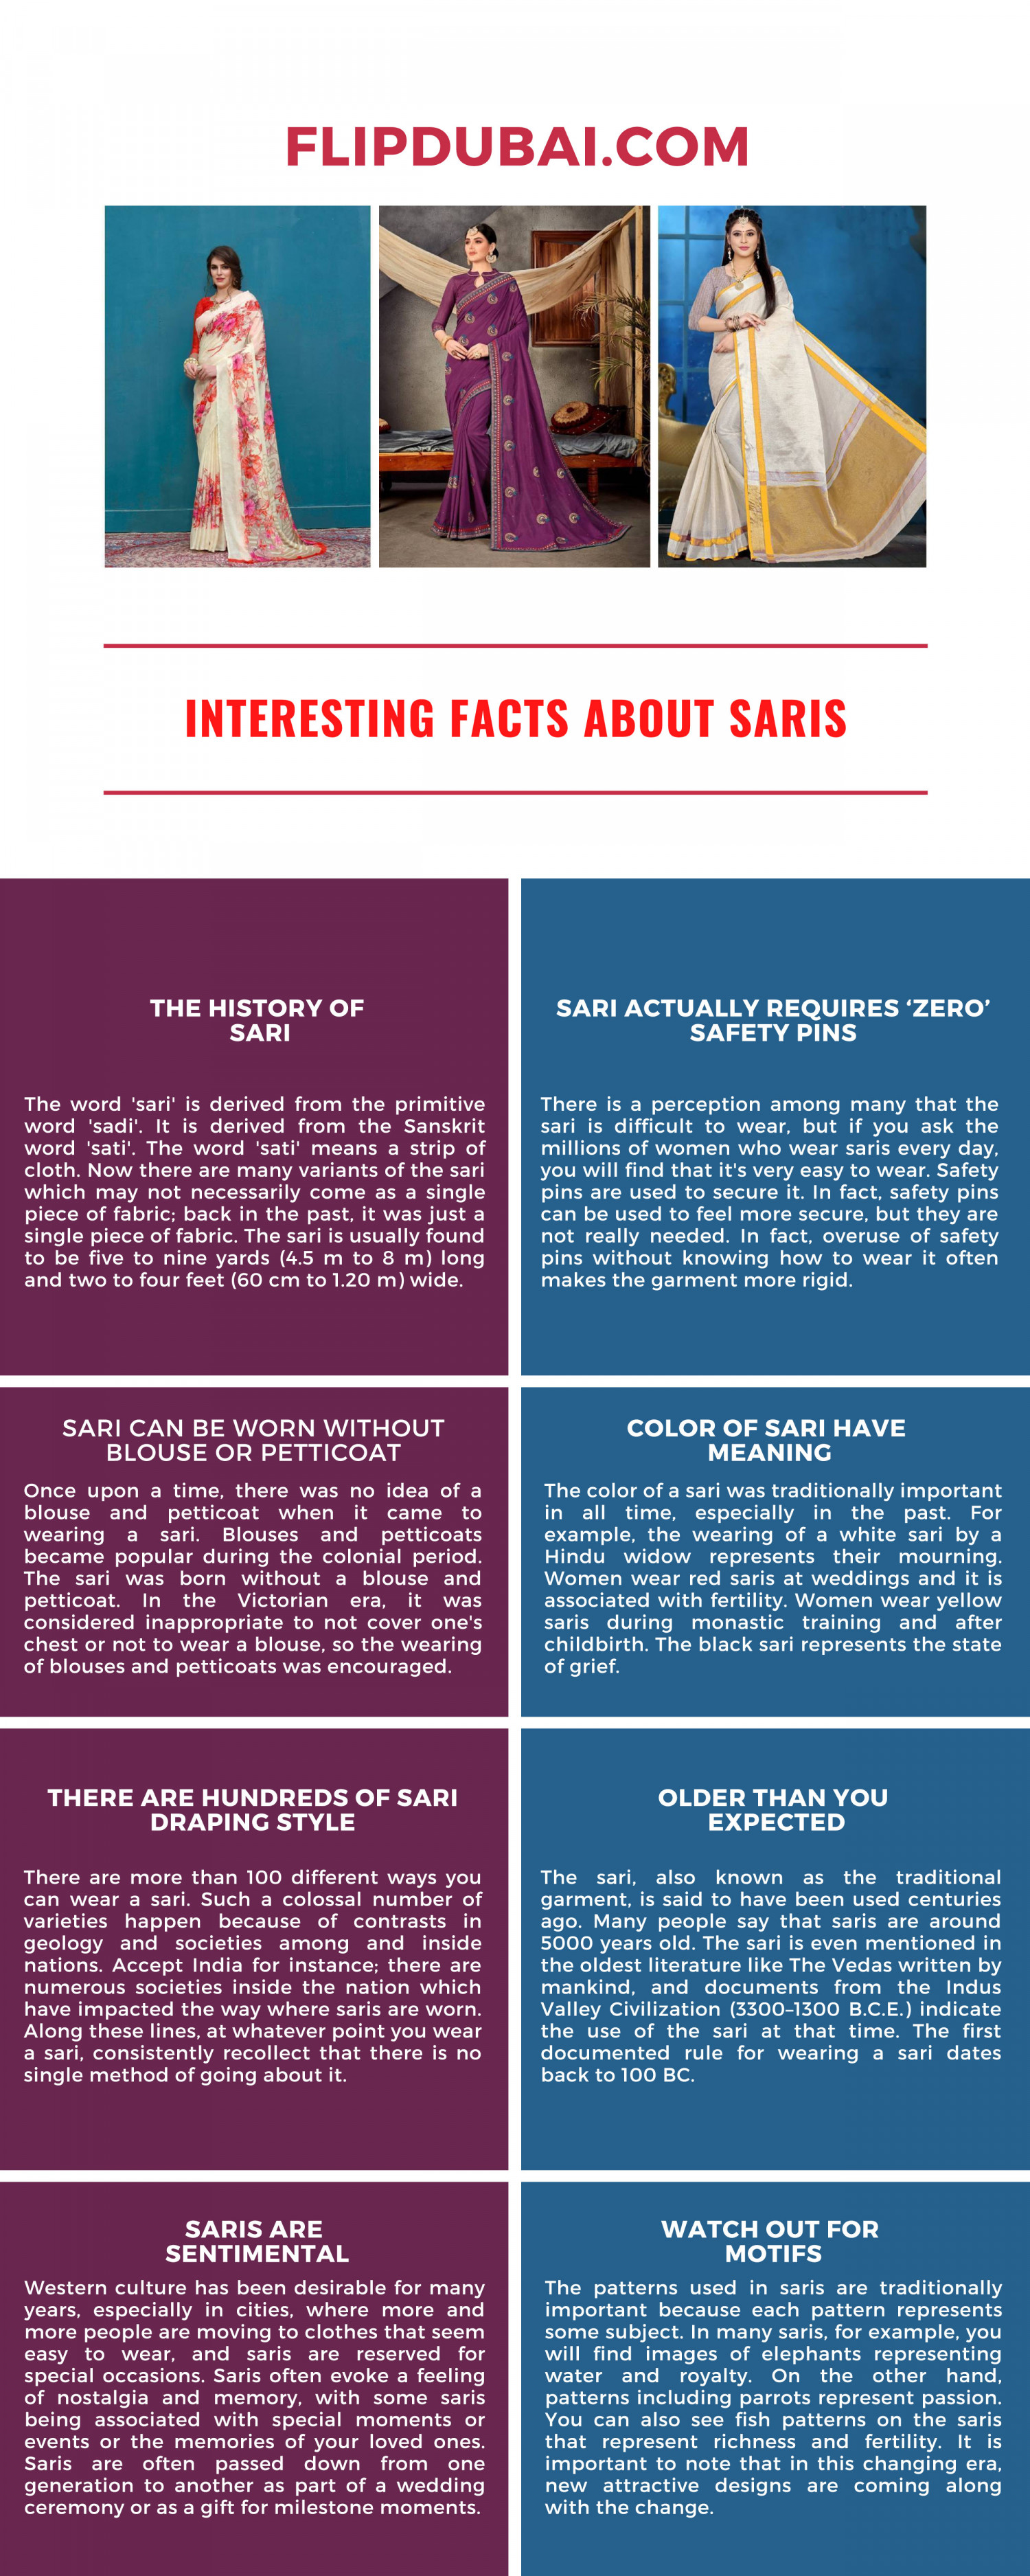 INTERESTING FACTS ABOUT 'SARI' Infographic